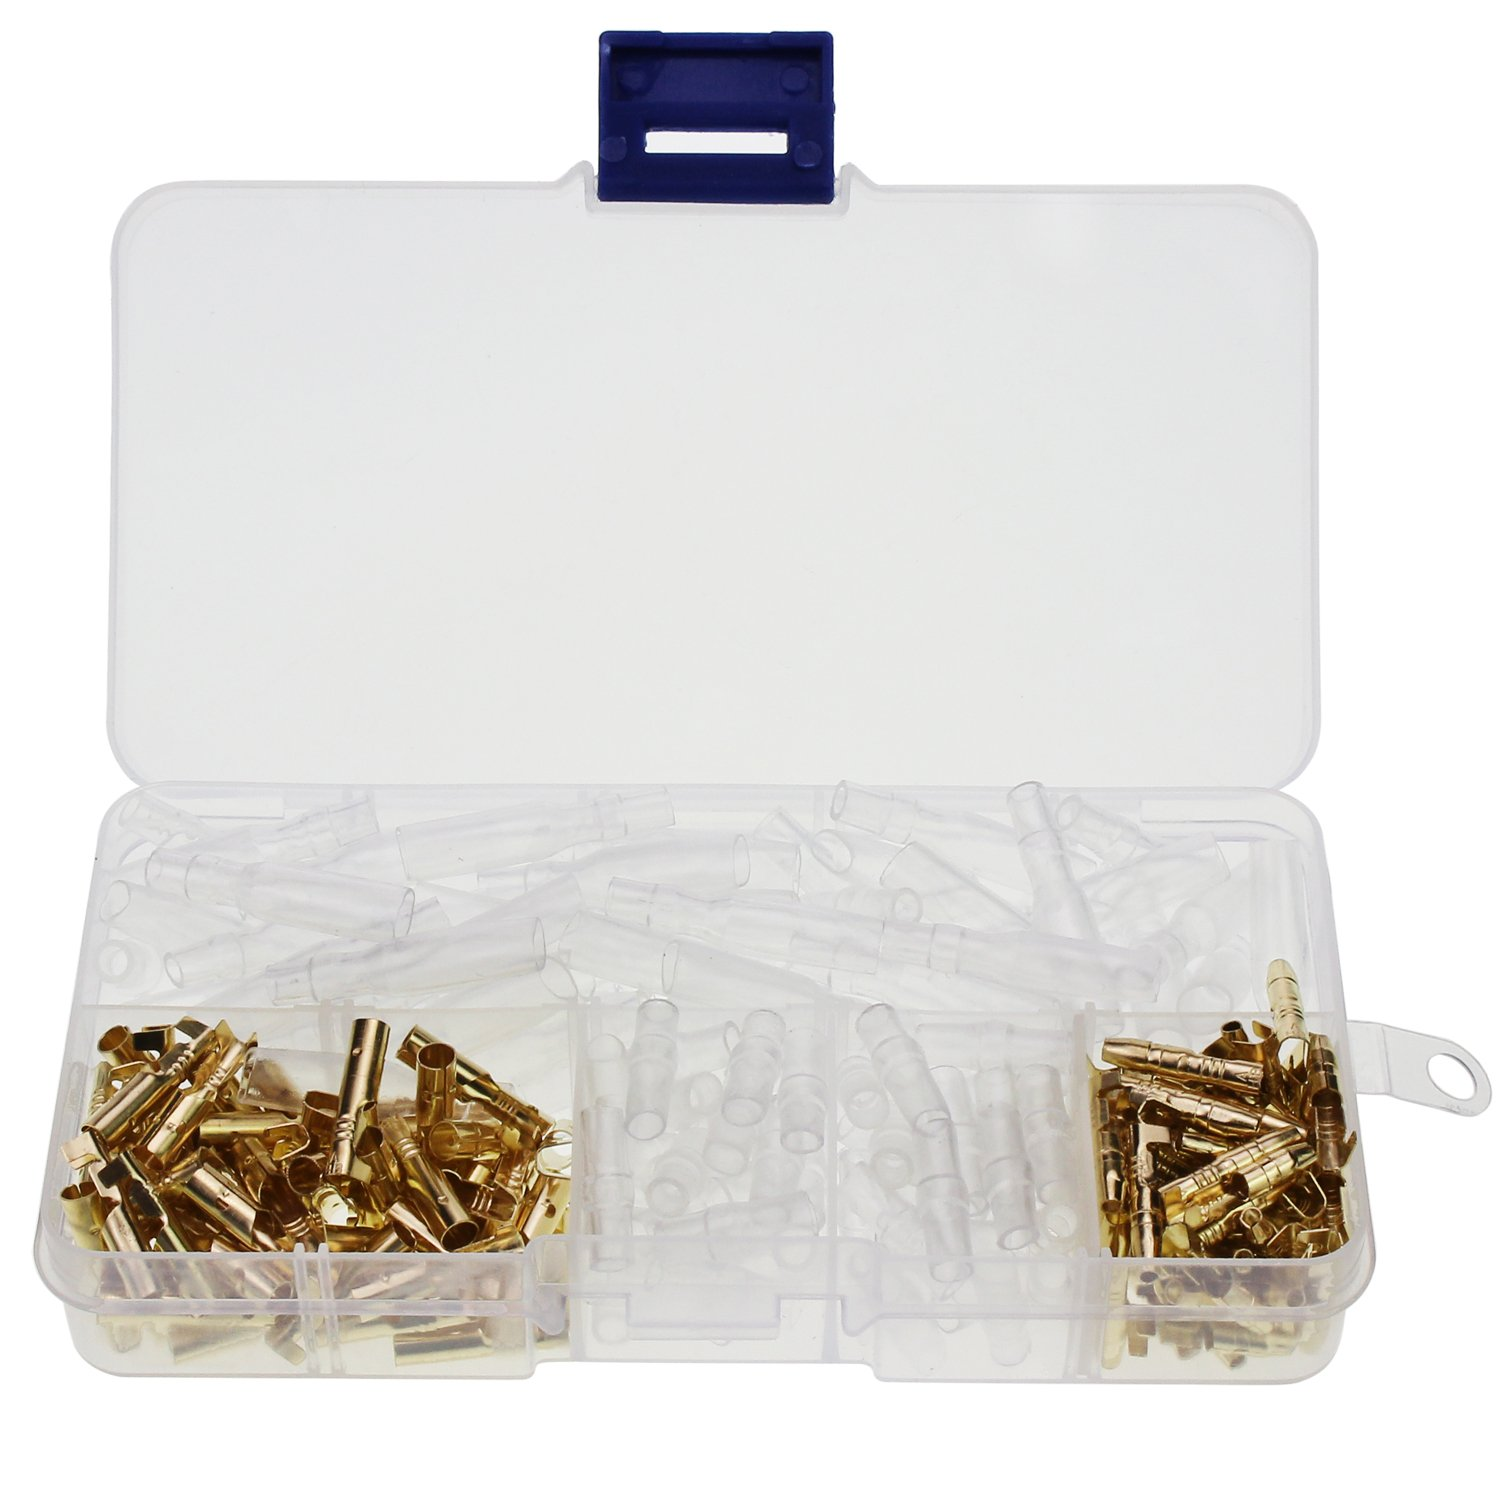 OCR Wire Terminal Crimp Male Female Spade Terminal Block Connector with Insulating Sleeve Assortment Kit 2.8mm 4.8mm 6.3mm 270pcs (240Pcs-Crimp Terminal)